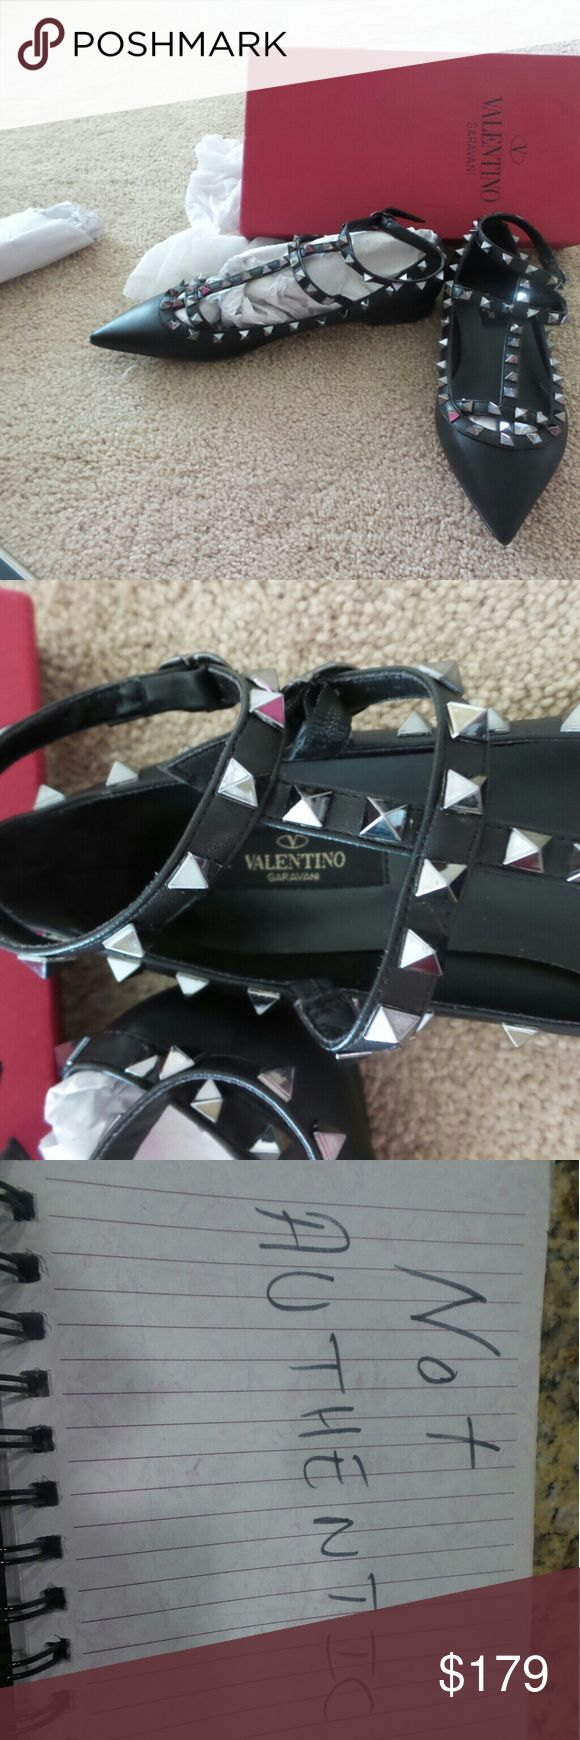 Valentino studded flats black Check all the pictures please before buying.  Silver studs.  Brand new . Size 39 but fits 38. Box included Valentino Shoes Flats & Loafers